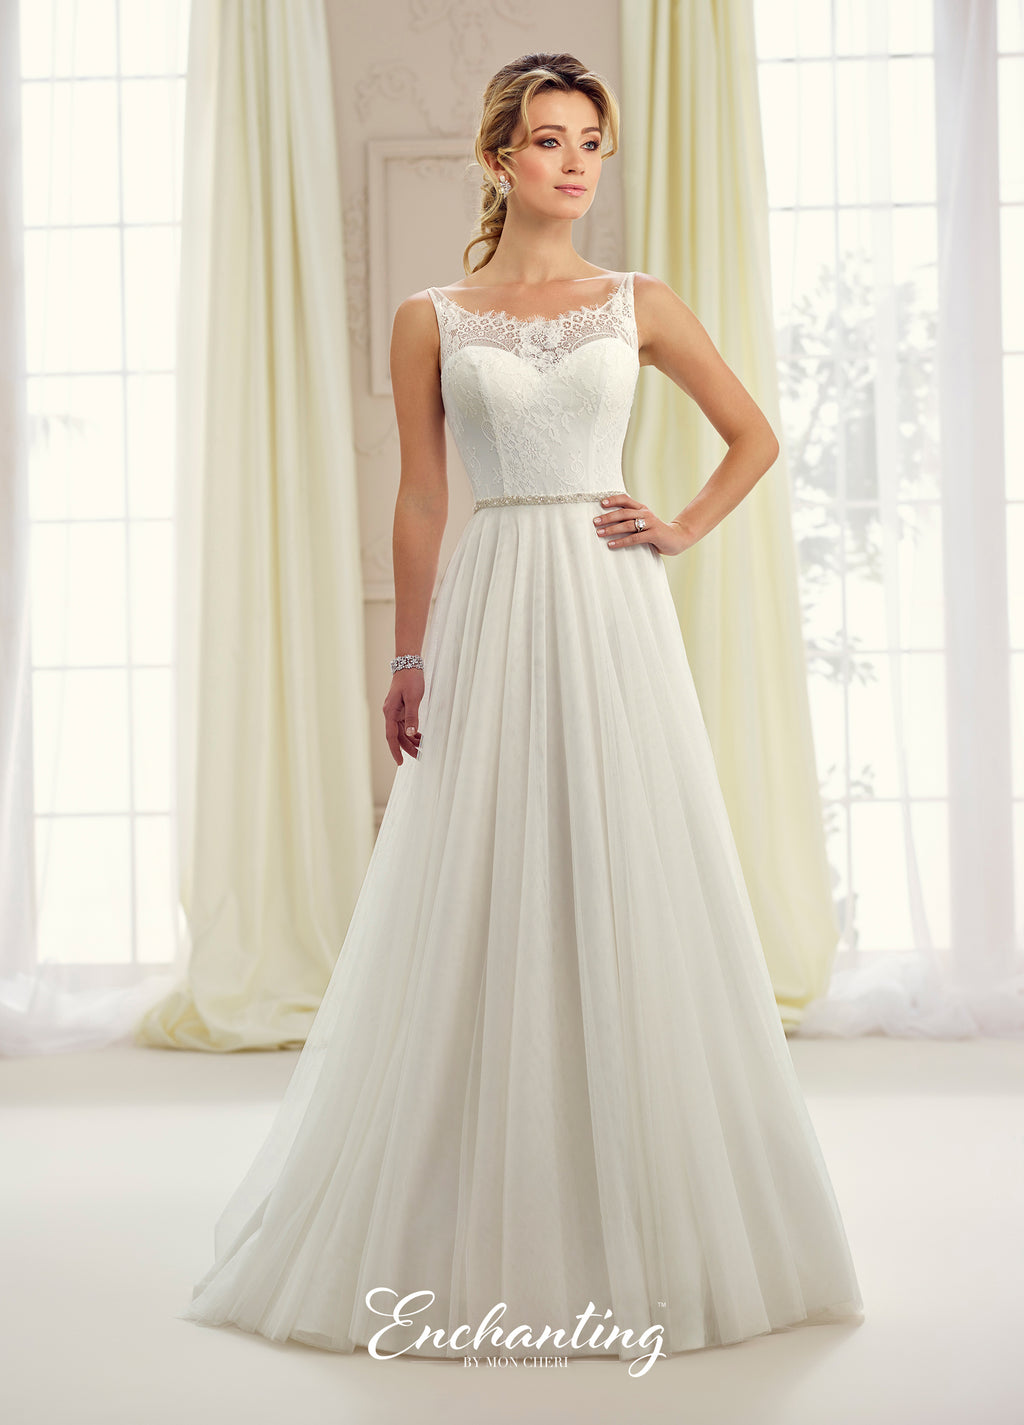 Glamorous Lace and Tulle A-Line Gown with Sabrina Neckline